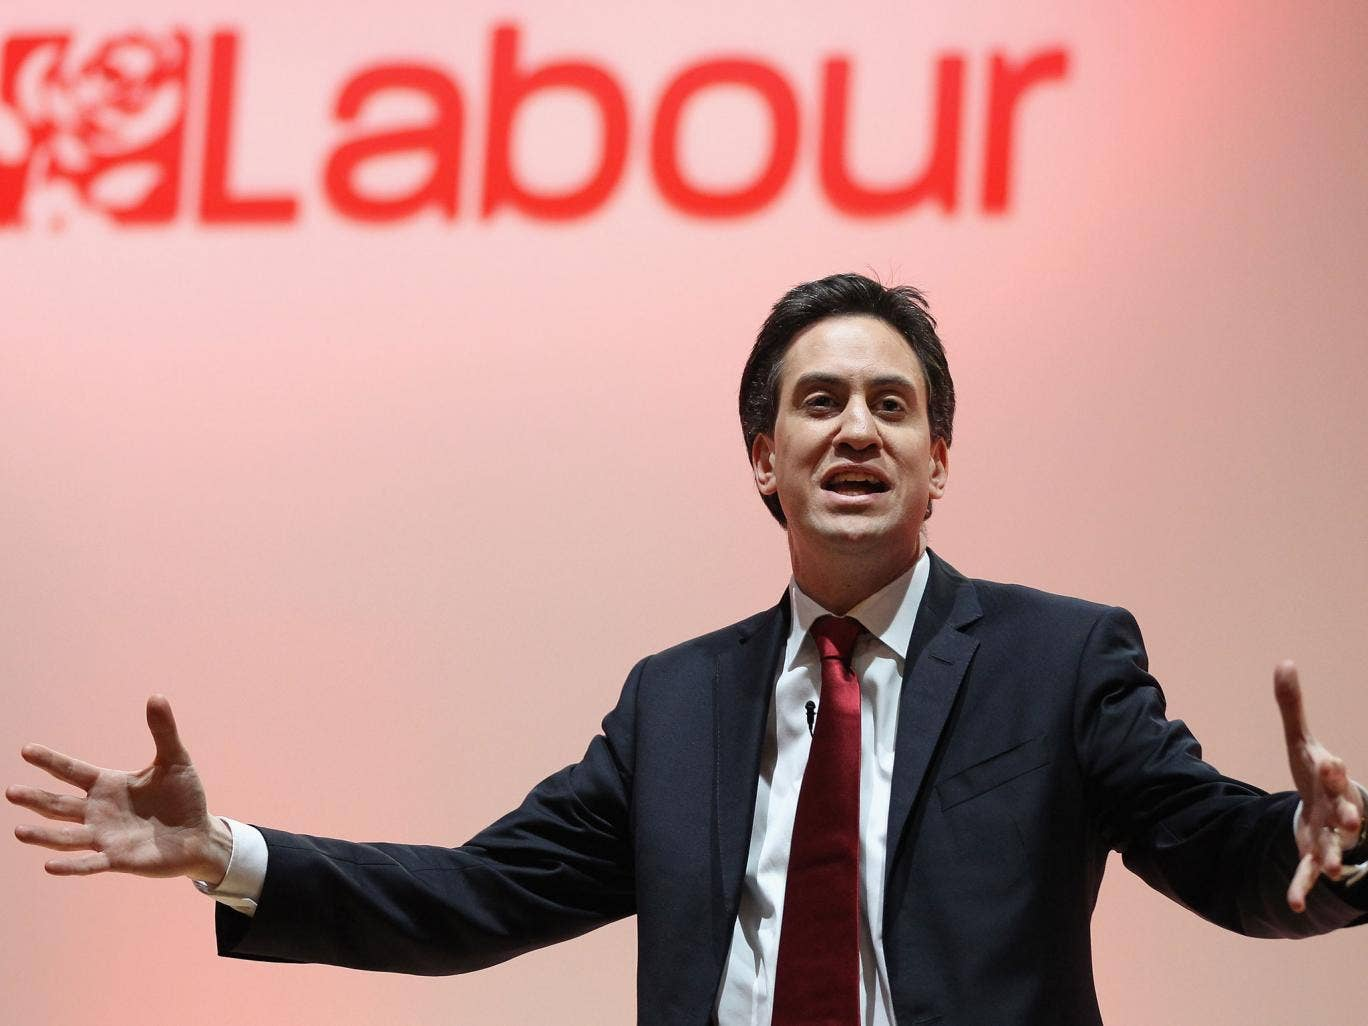 Ed Miliban has pledged to freeze gas and electricity prices for 20 months if Labour wins power